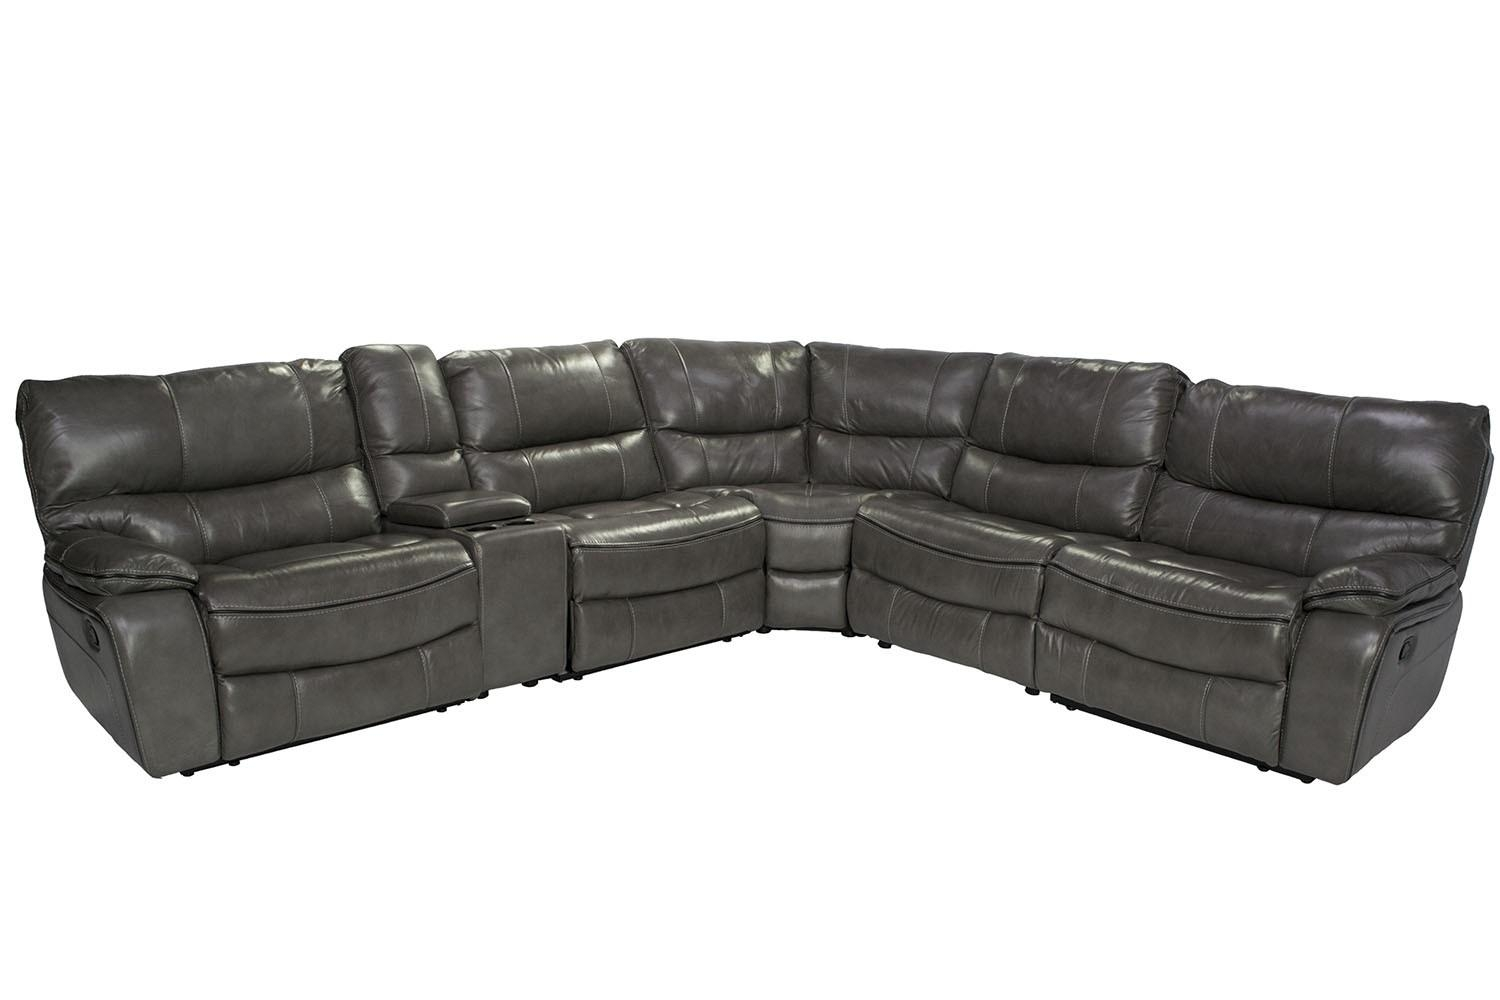 Lotus Gray 6 Piece Leather Seating Reclining Sectional | Mor In 6 Piece Sectional Sofas Couches (Image 12 of 20)